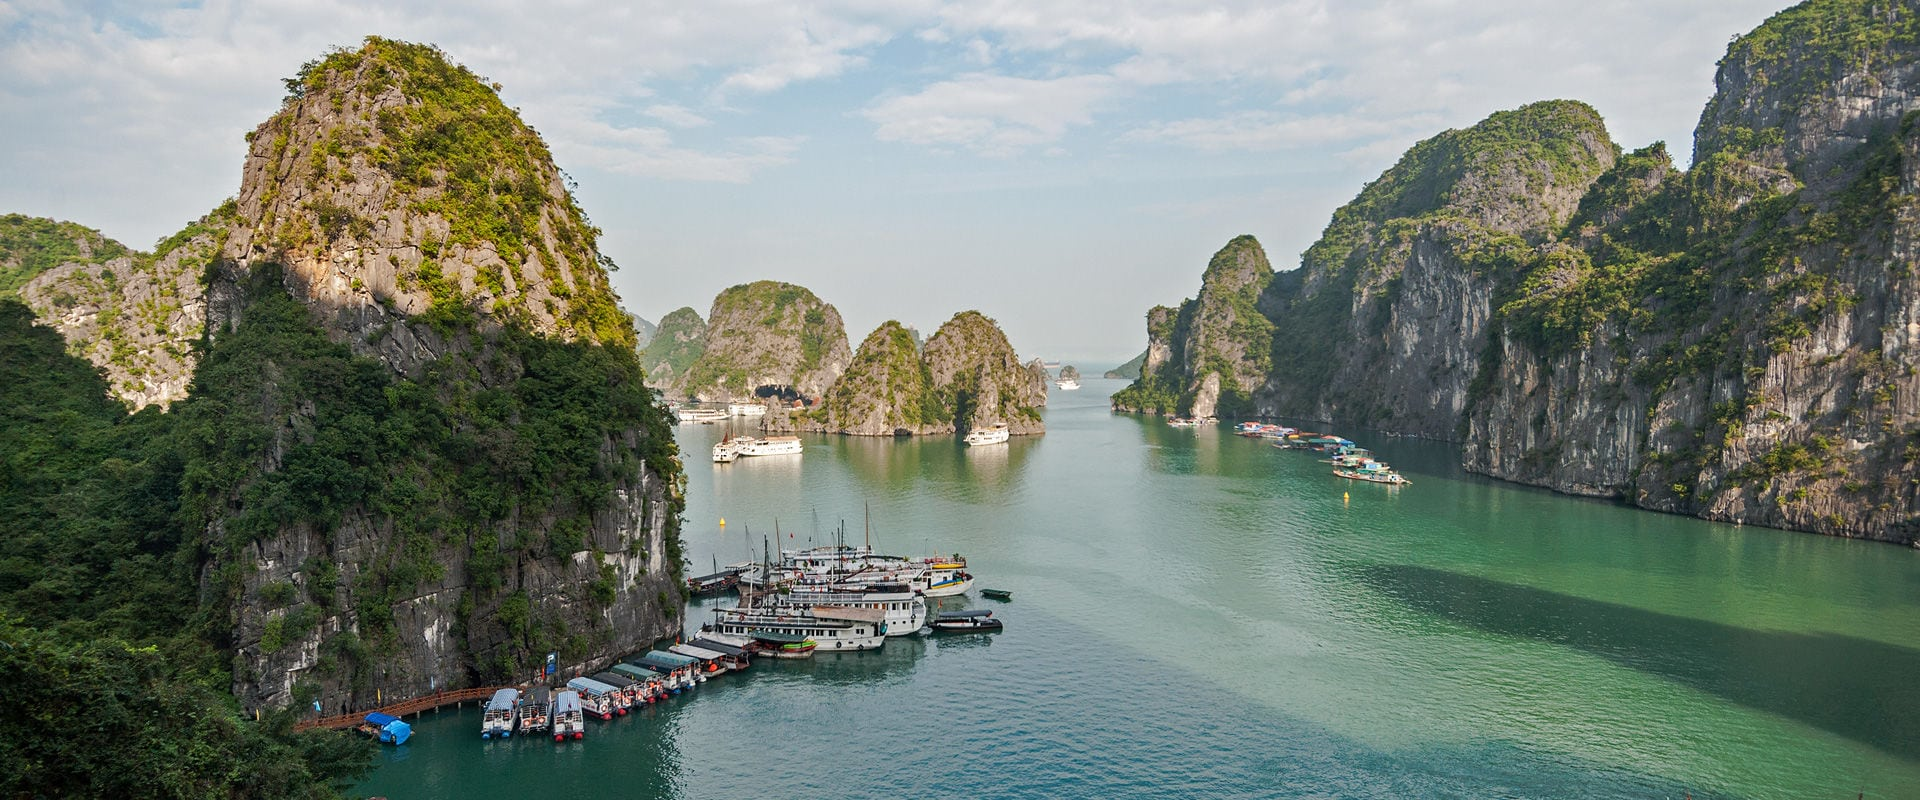 The Grantourismo Travel Guide to Halong Bay, Vietnam. Copyright © 2018 Terence Carter / Grantourismo. All Rights Reserved.